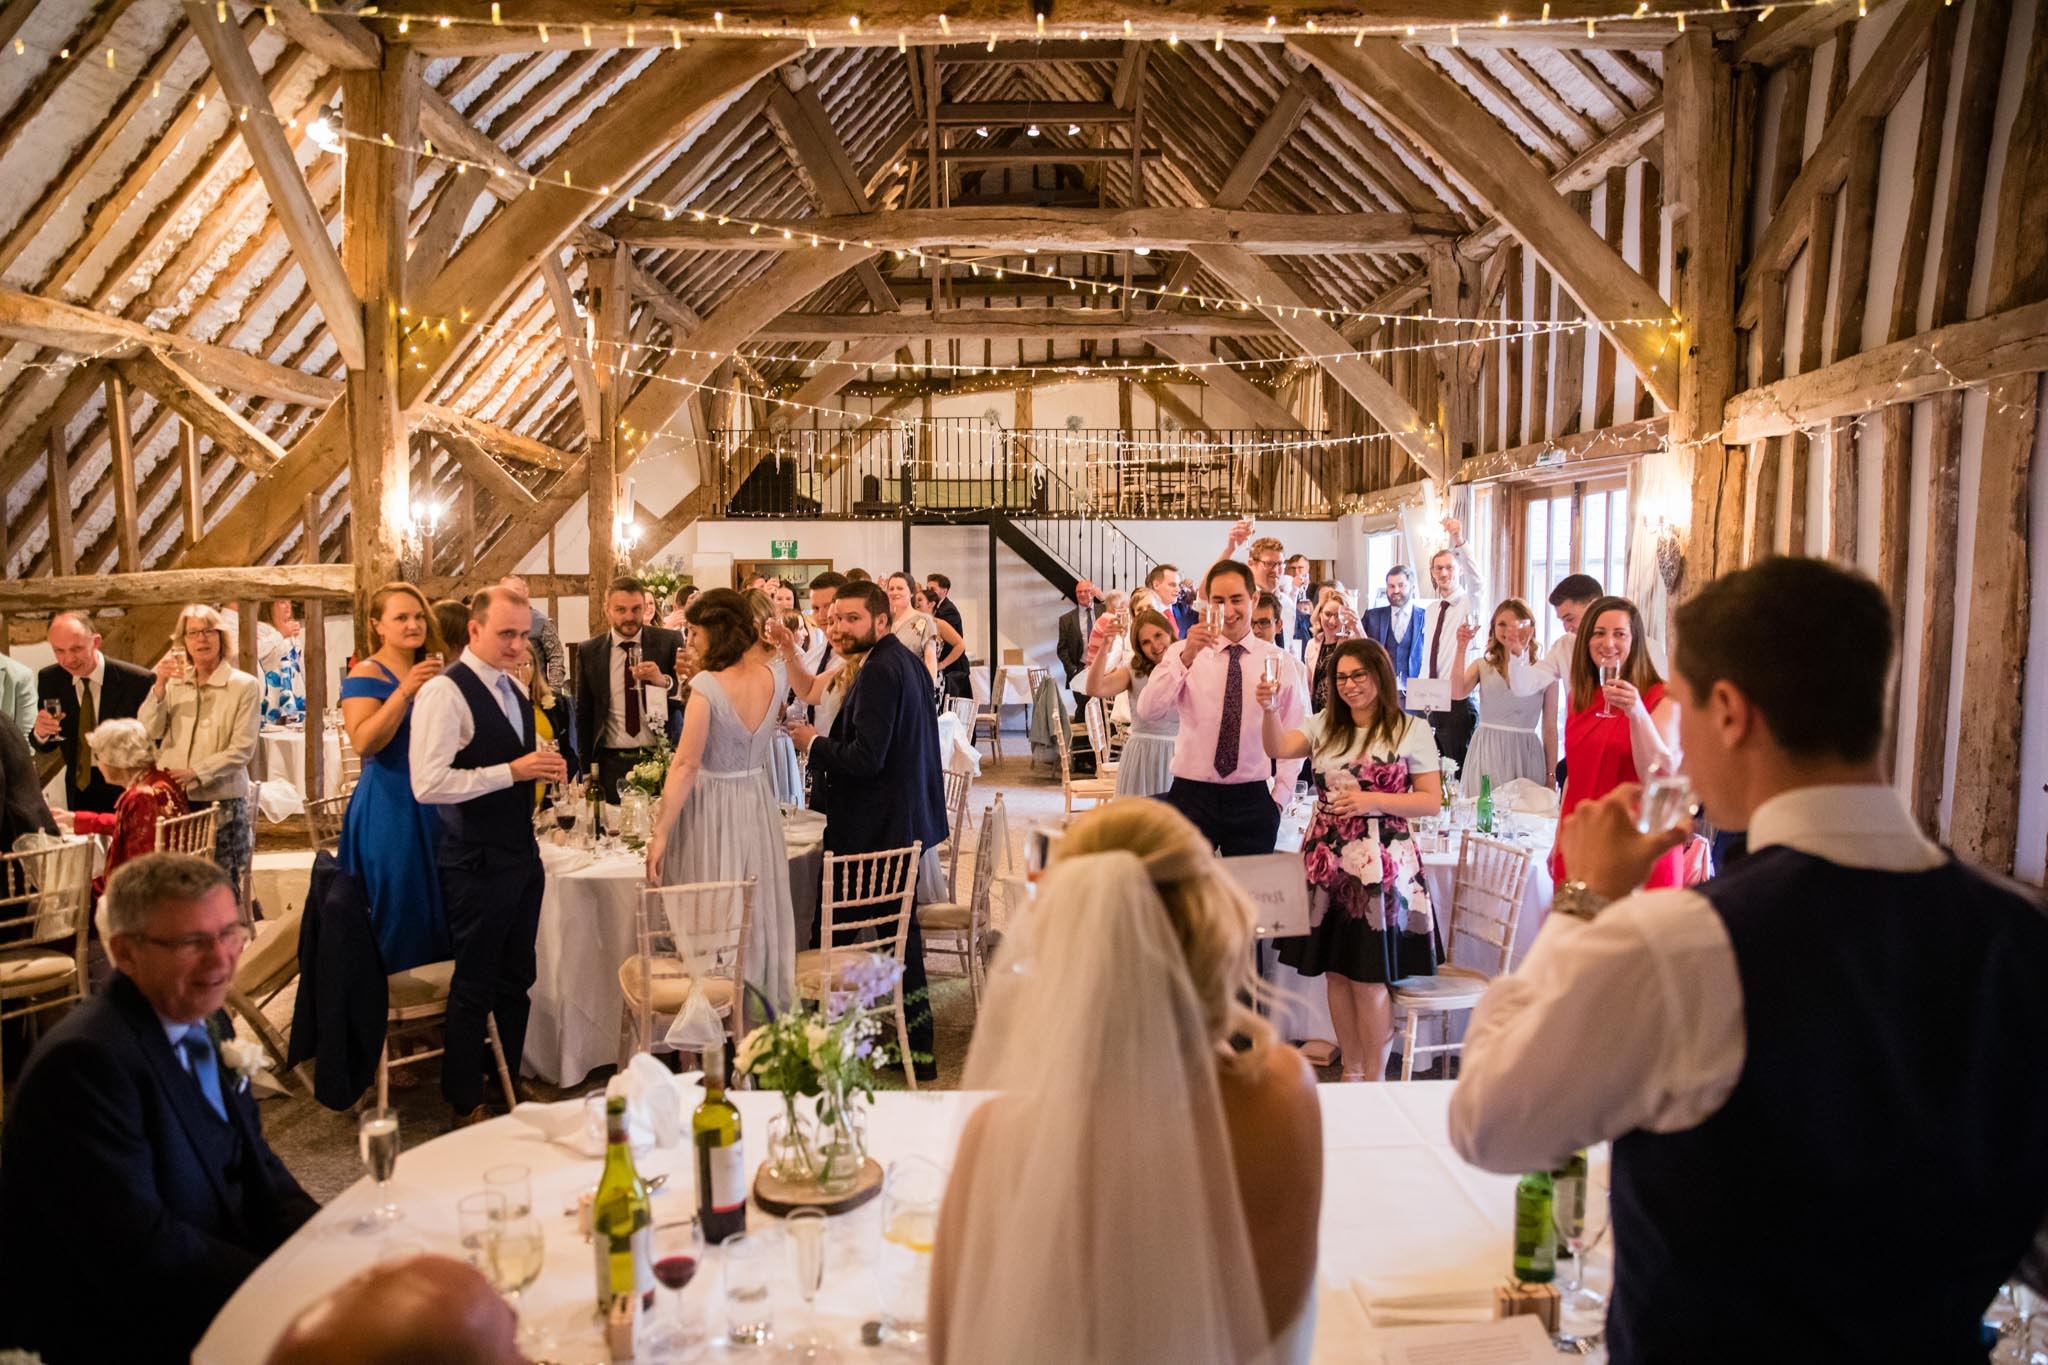 The Main Barn is beautifully light and airy despite being over 400 years old and will comfortably seat over 100 guests.